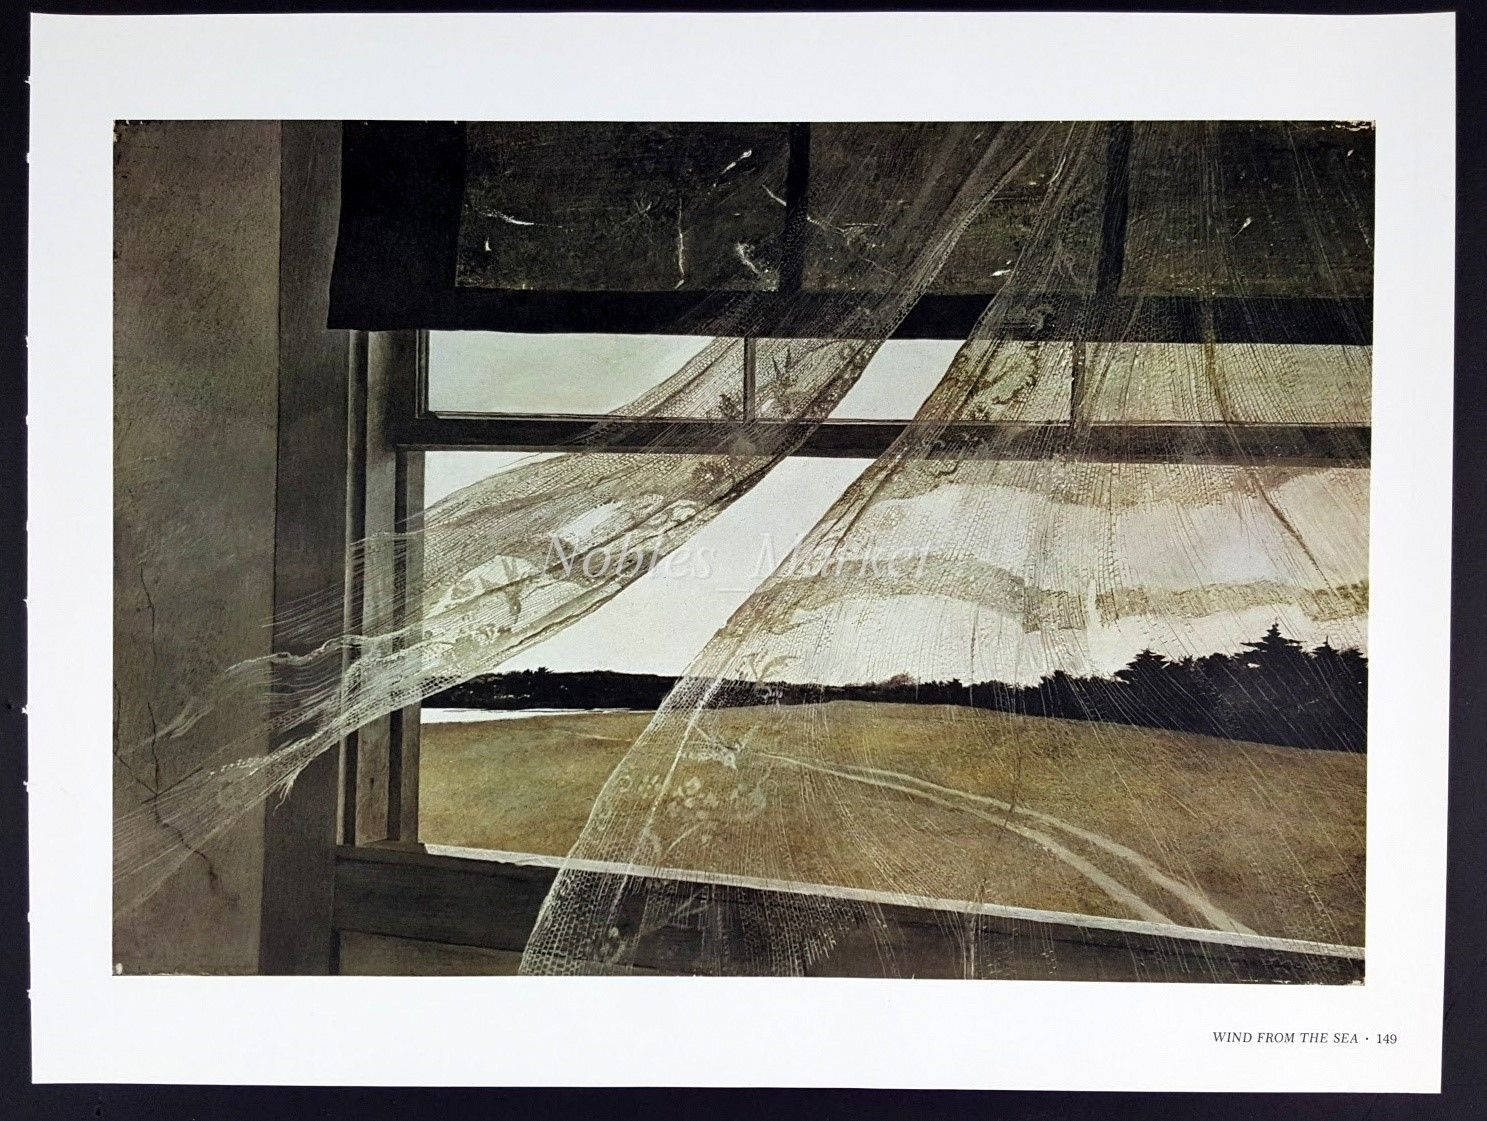 Andrew Wyeth Gravure Print WIND FROM THE SEA, Olson's